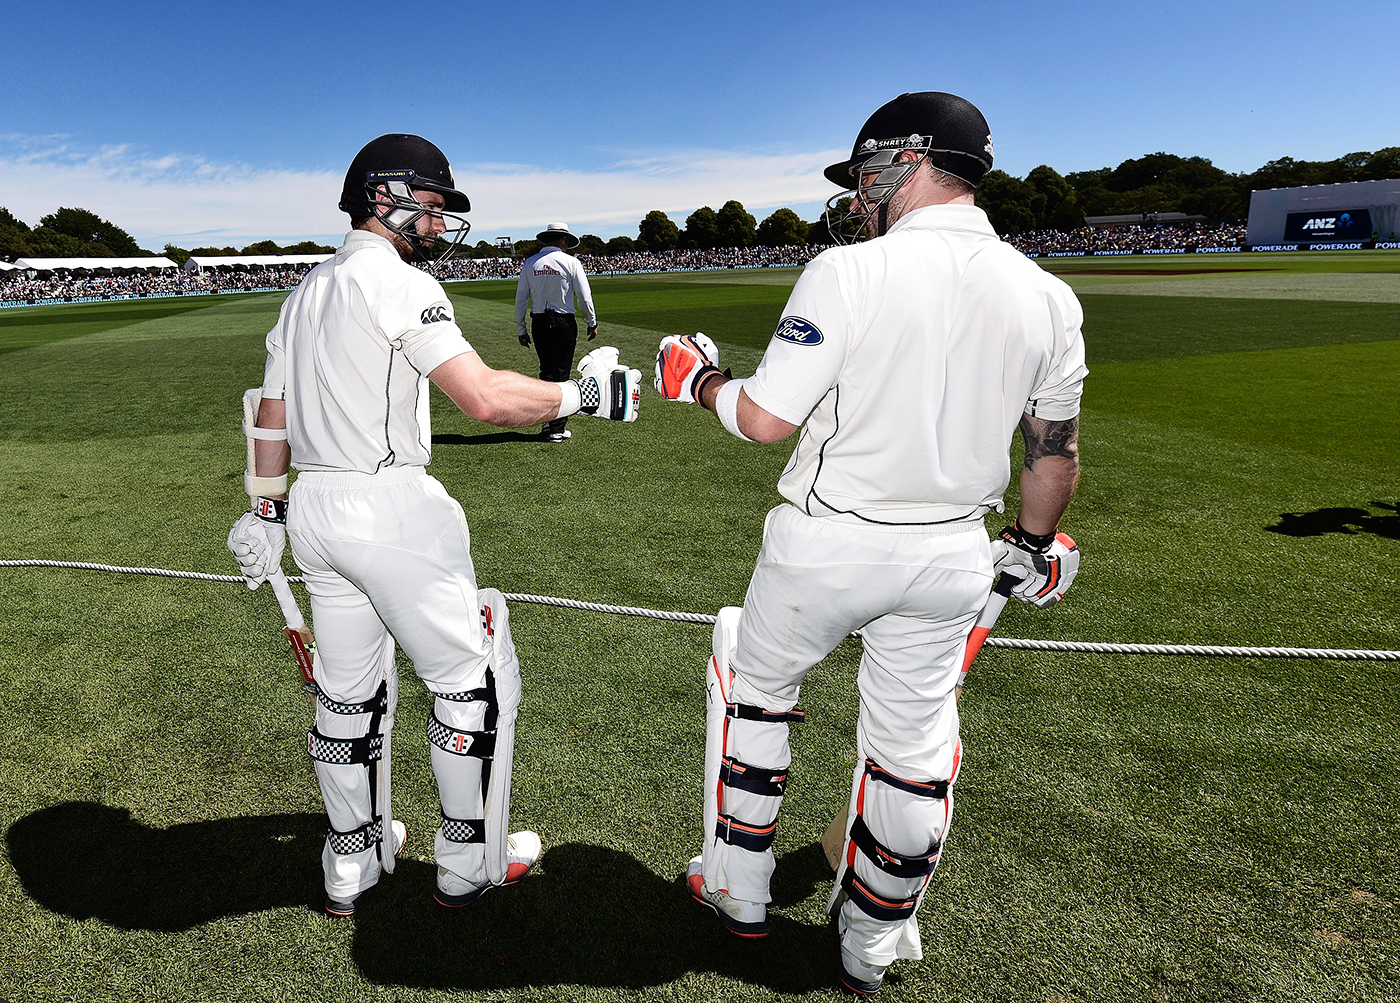 Kane Williamson and Brendon McCullum bump fists before walking out to bat